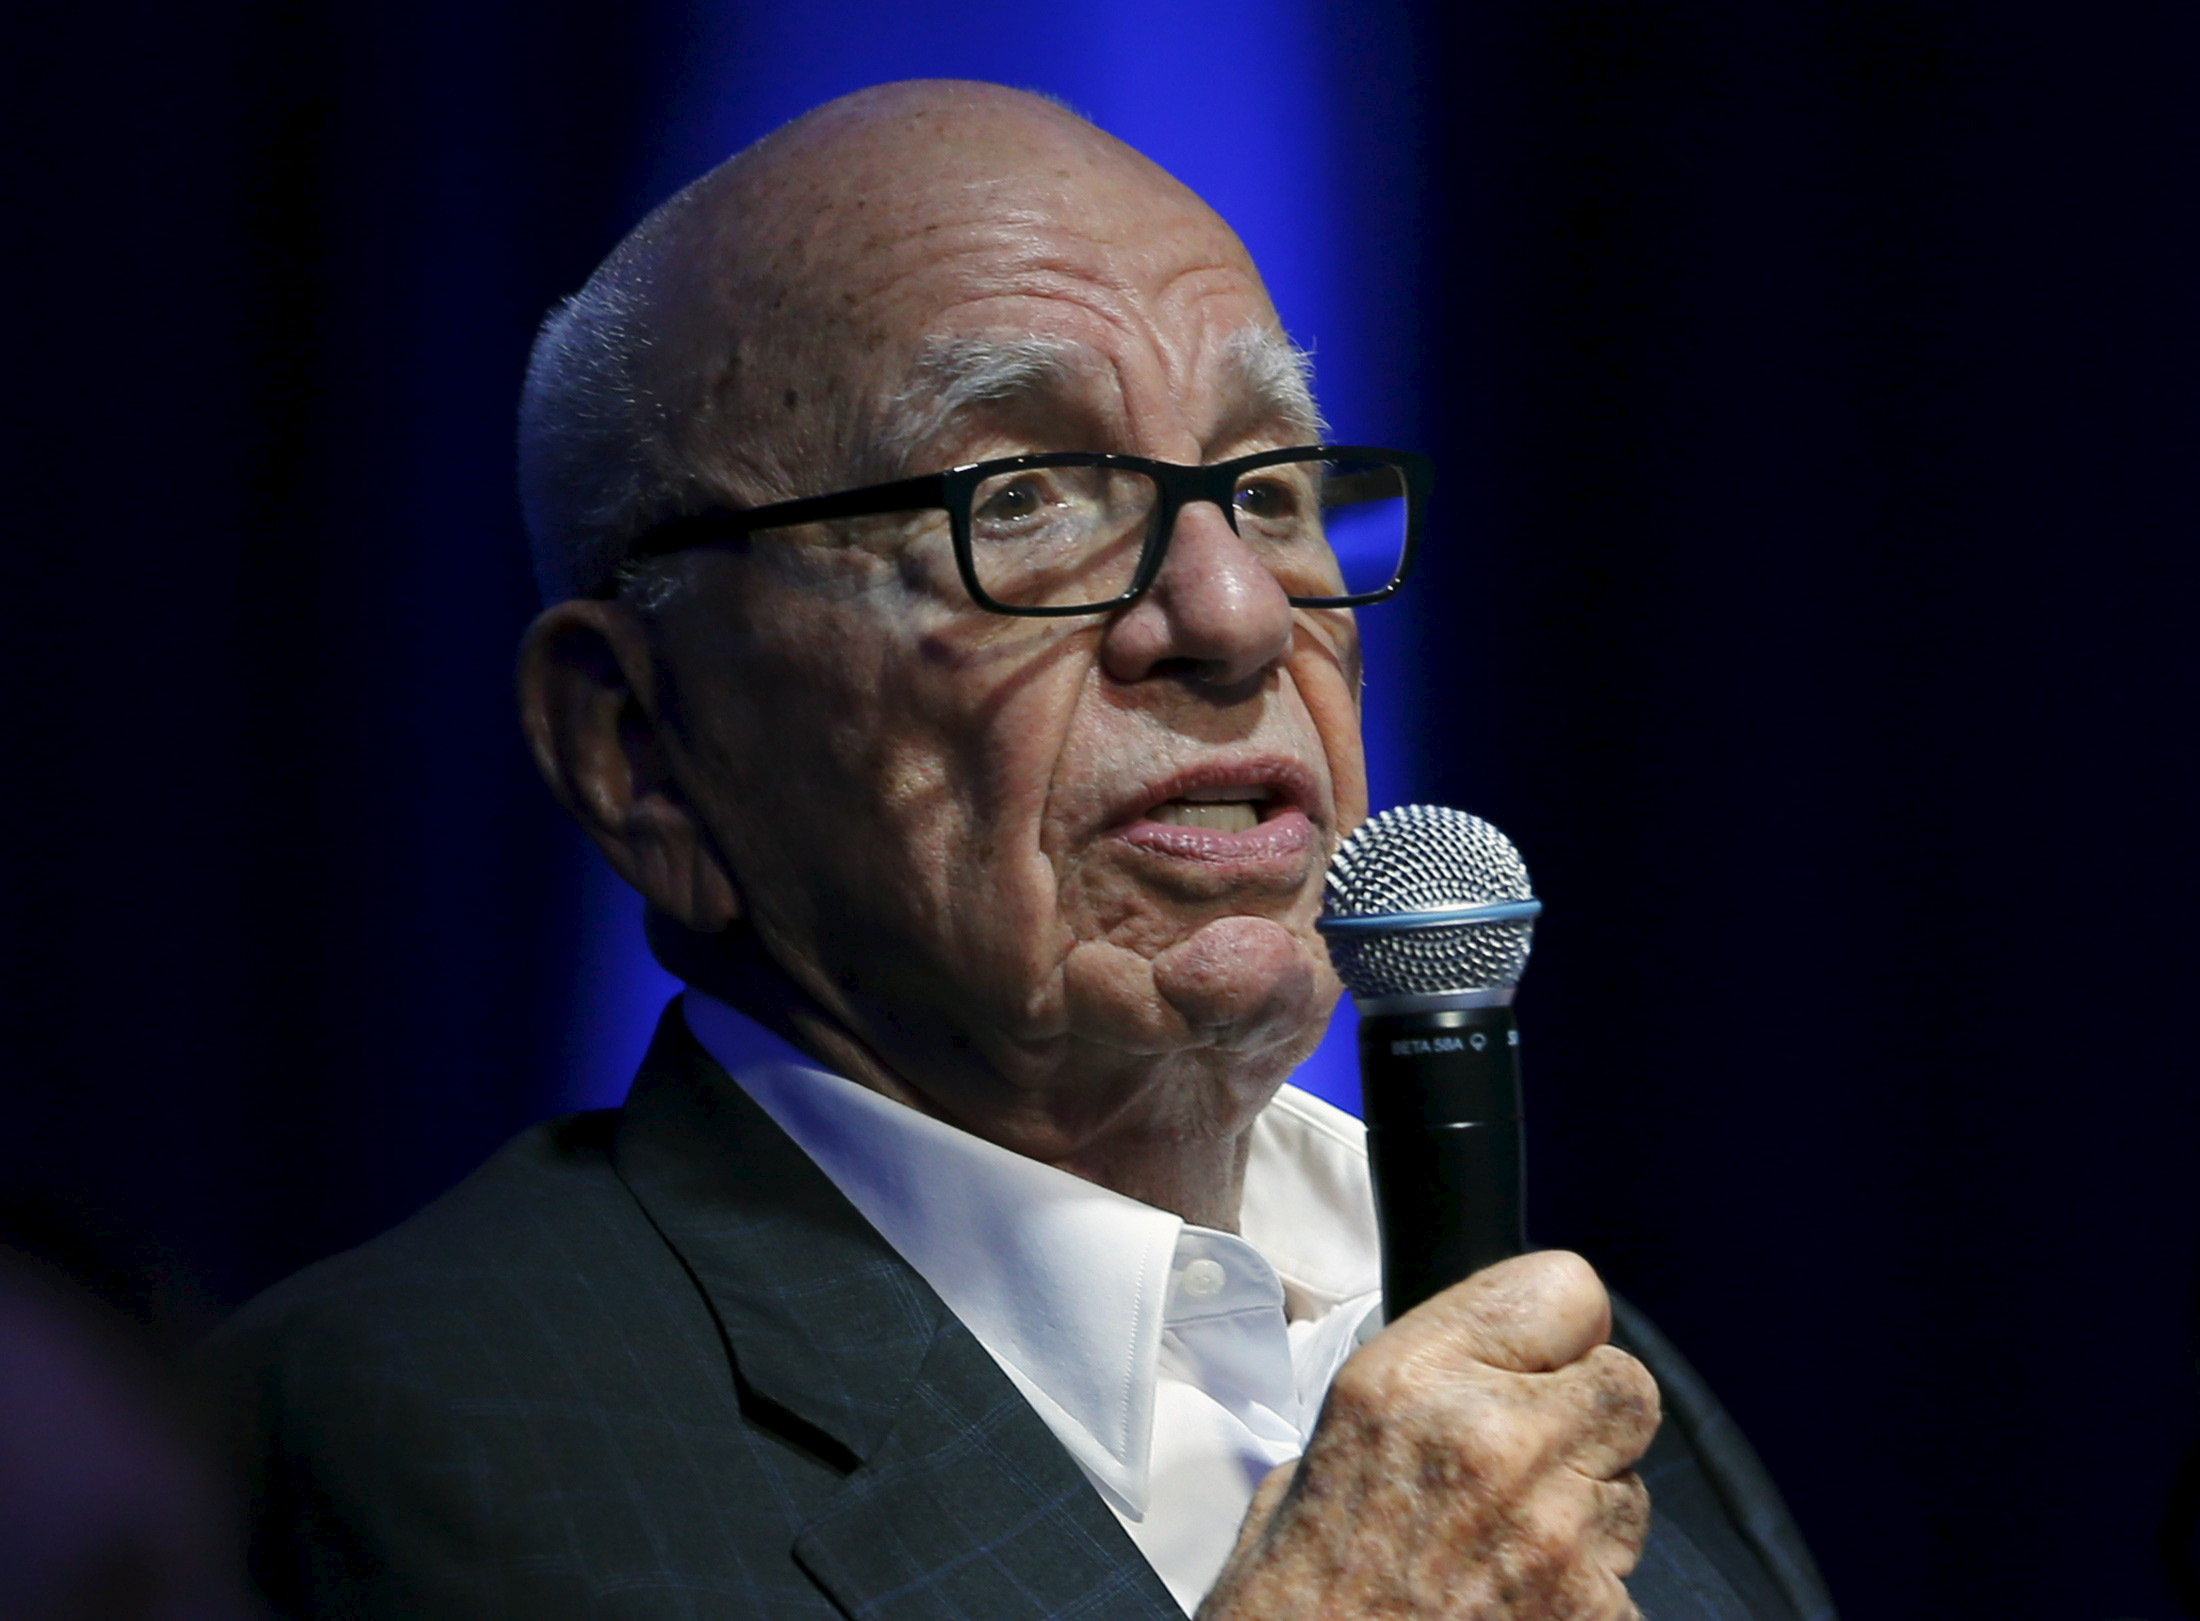 Murdoch takes part as a judge during a global start up showcase during the WSJDLive conference in Laguna Beach